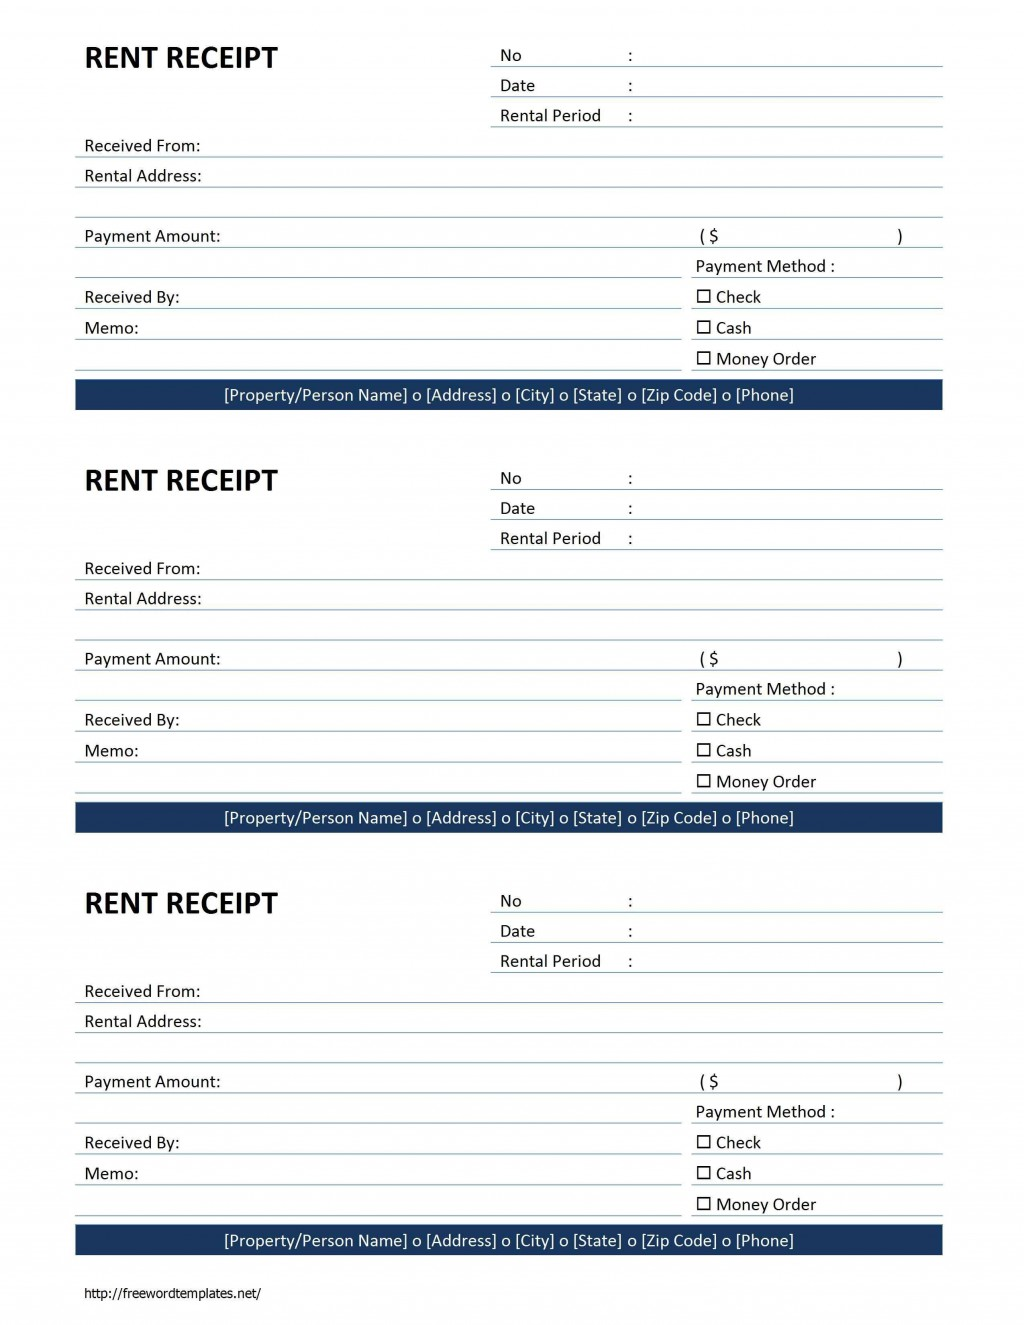 000 Awful Sample Rent Receipt Word Doc Design Large